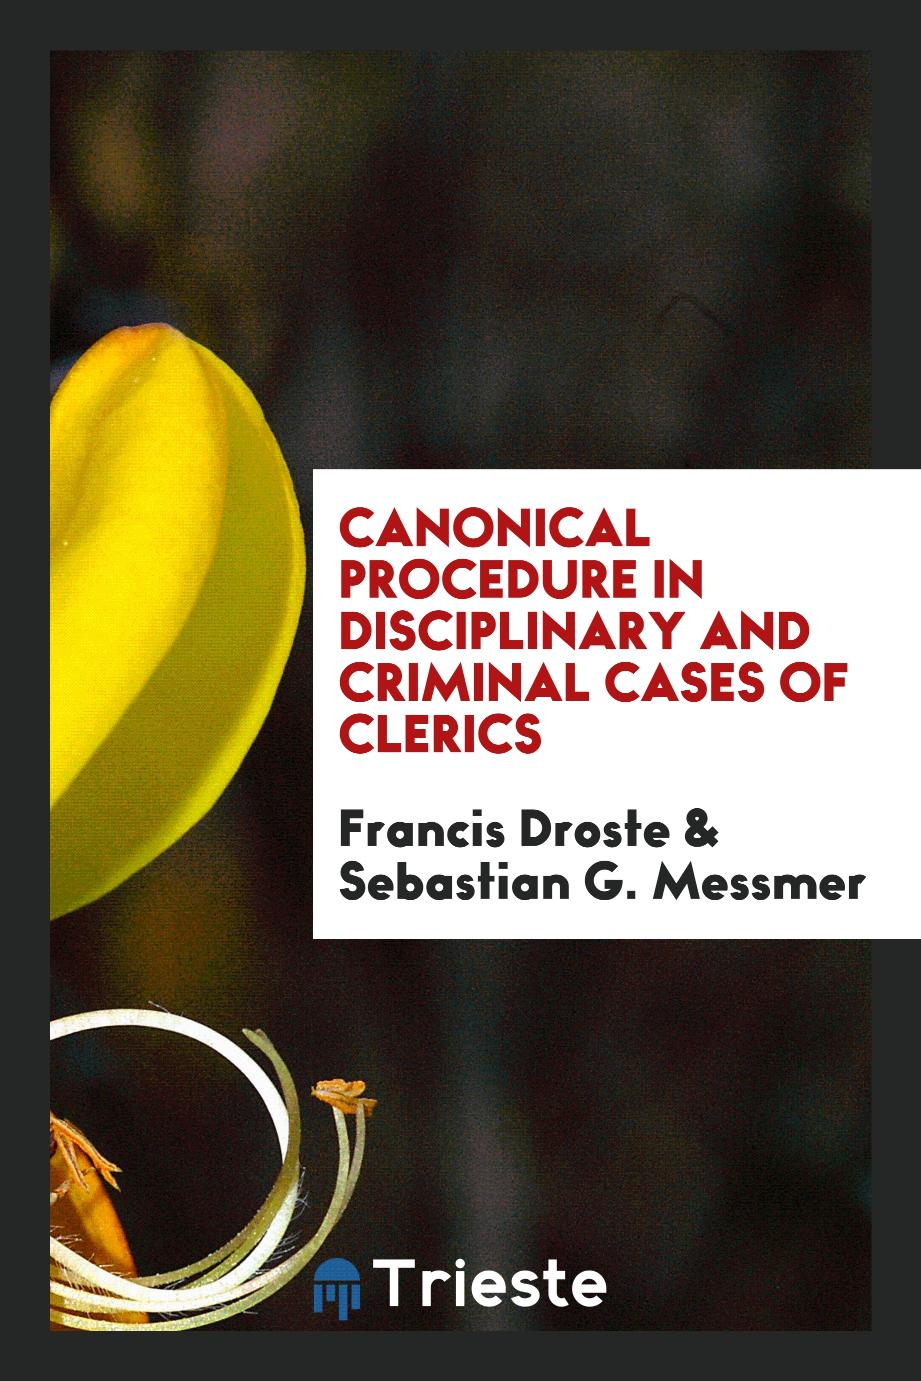 Canonical procedure in disciplinary and criminal cases of clerics